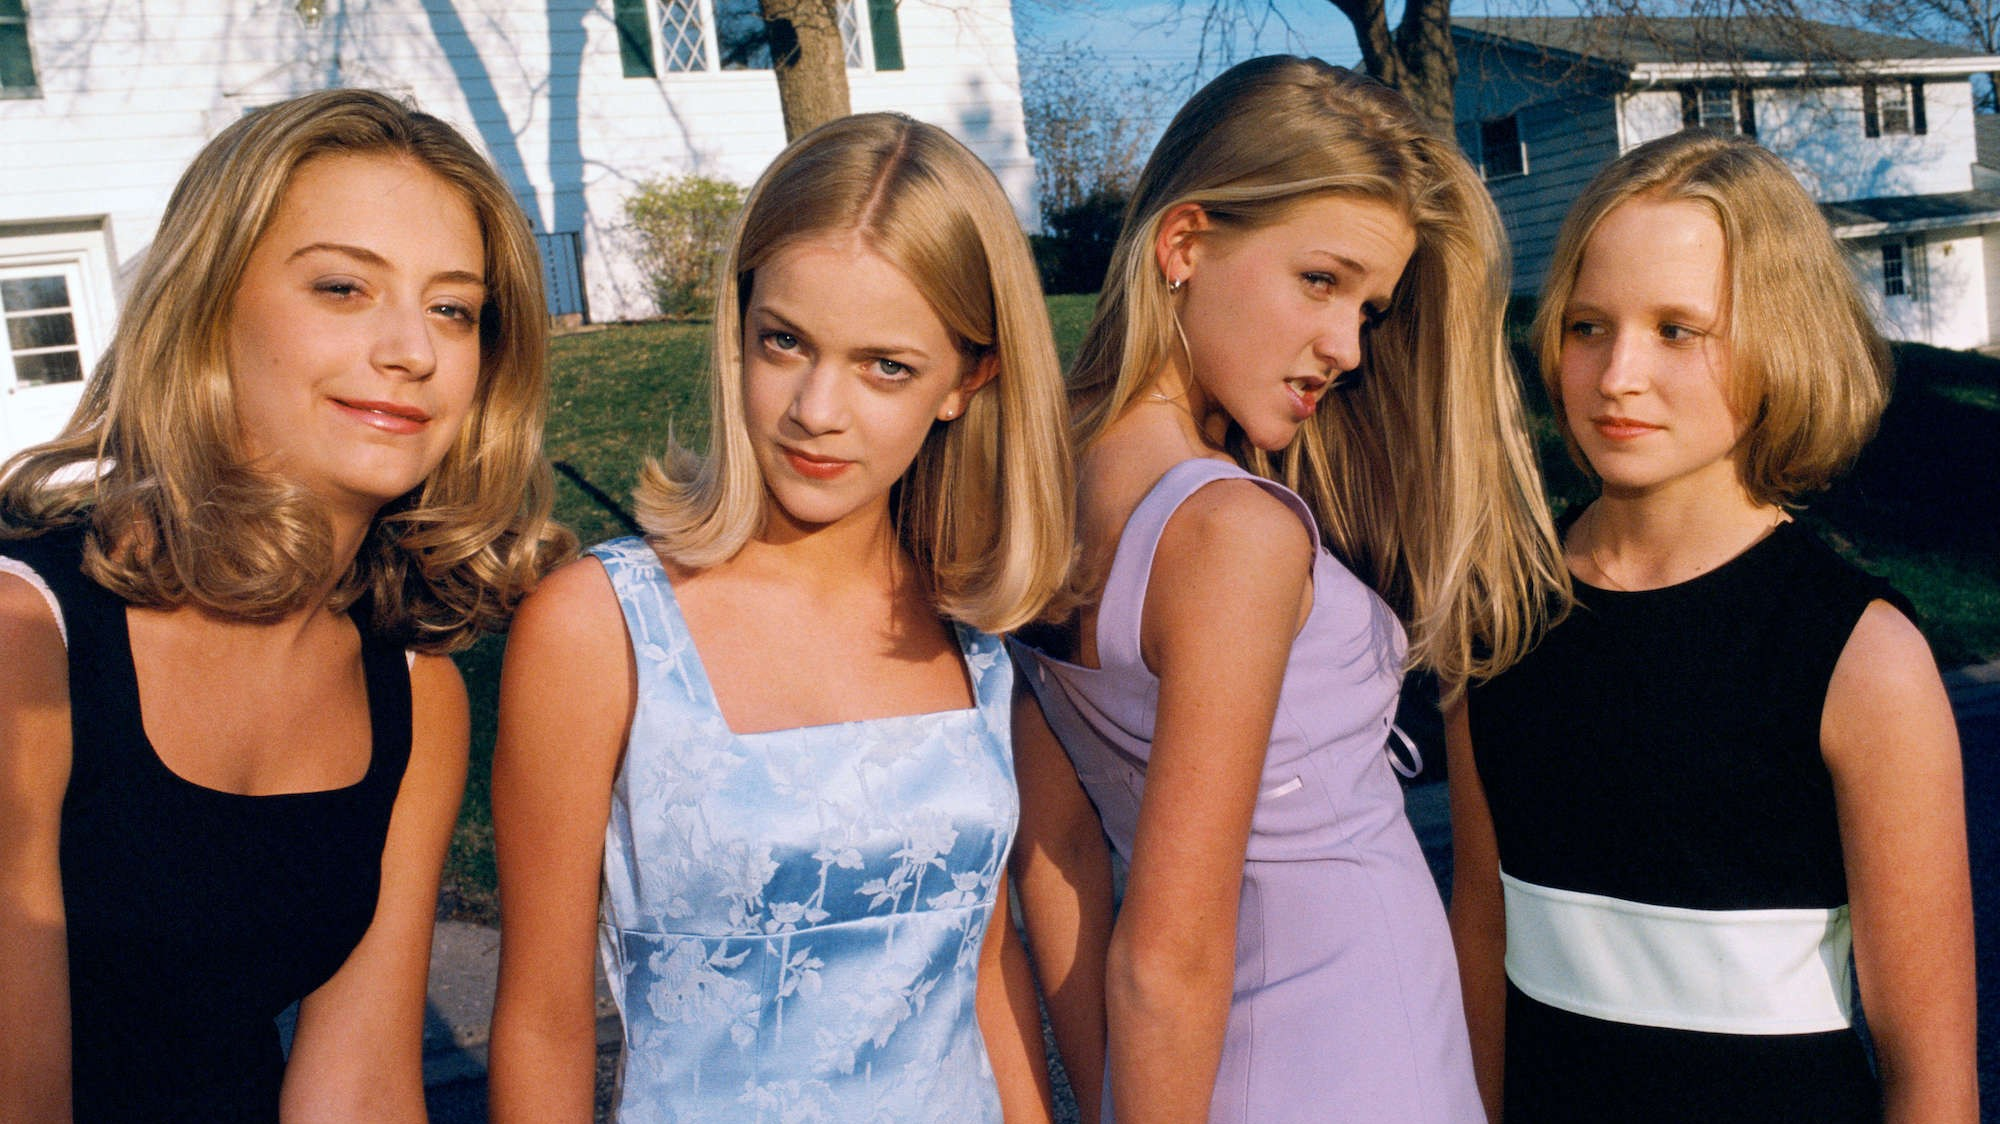 Looks Like Teen Spirit: Intimate Portraits of 90s American Girlhood